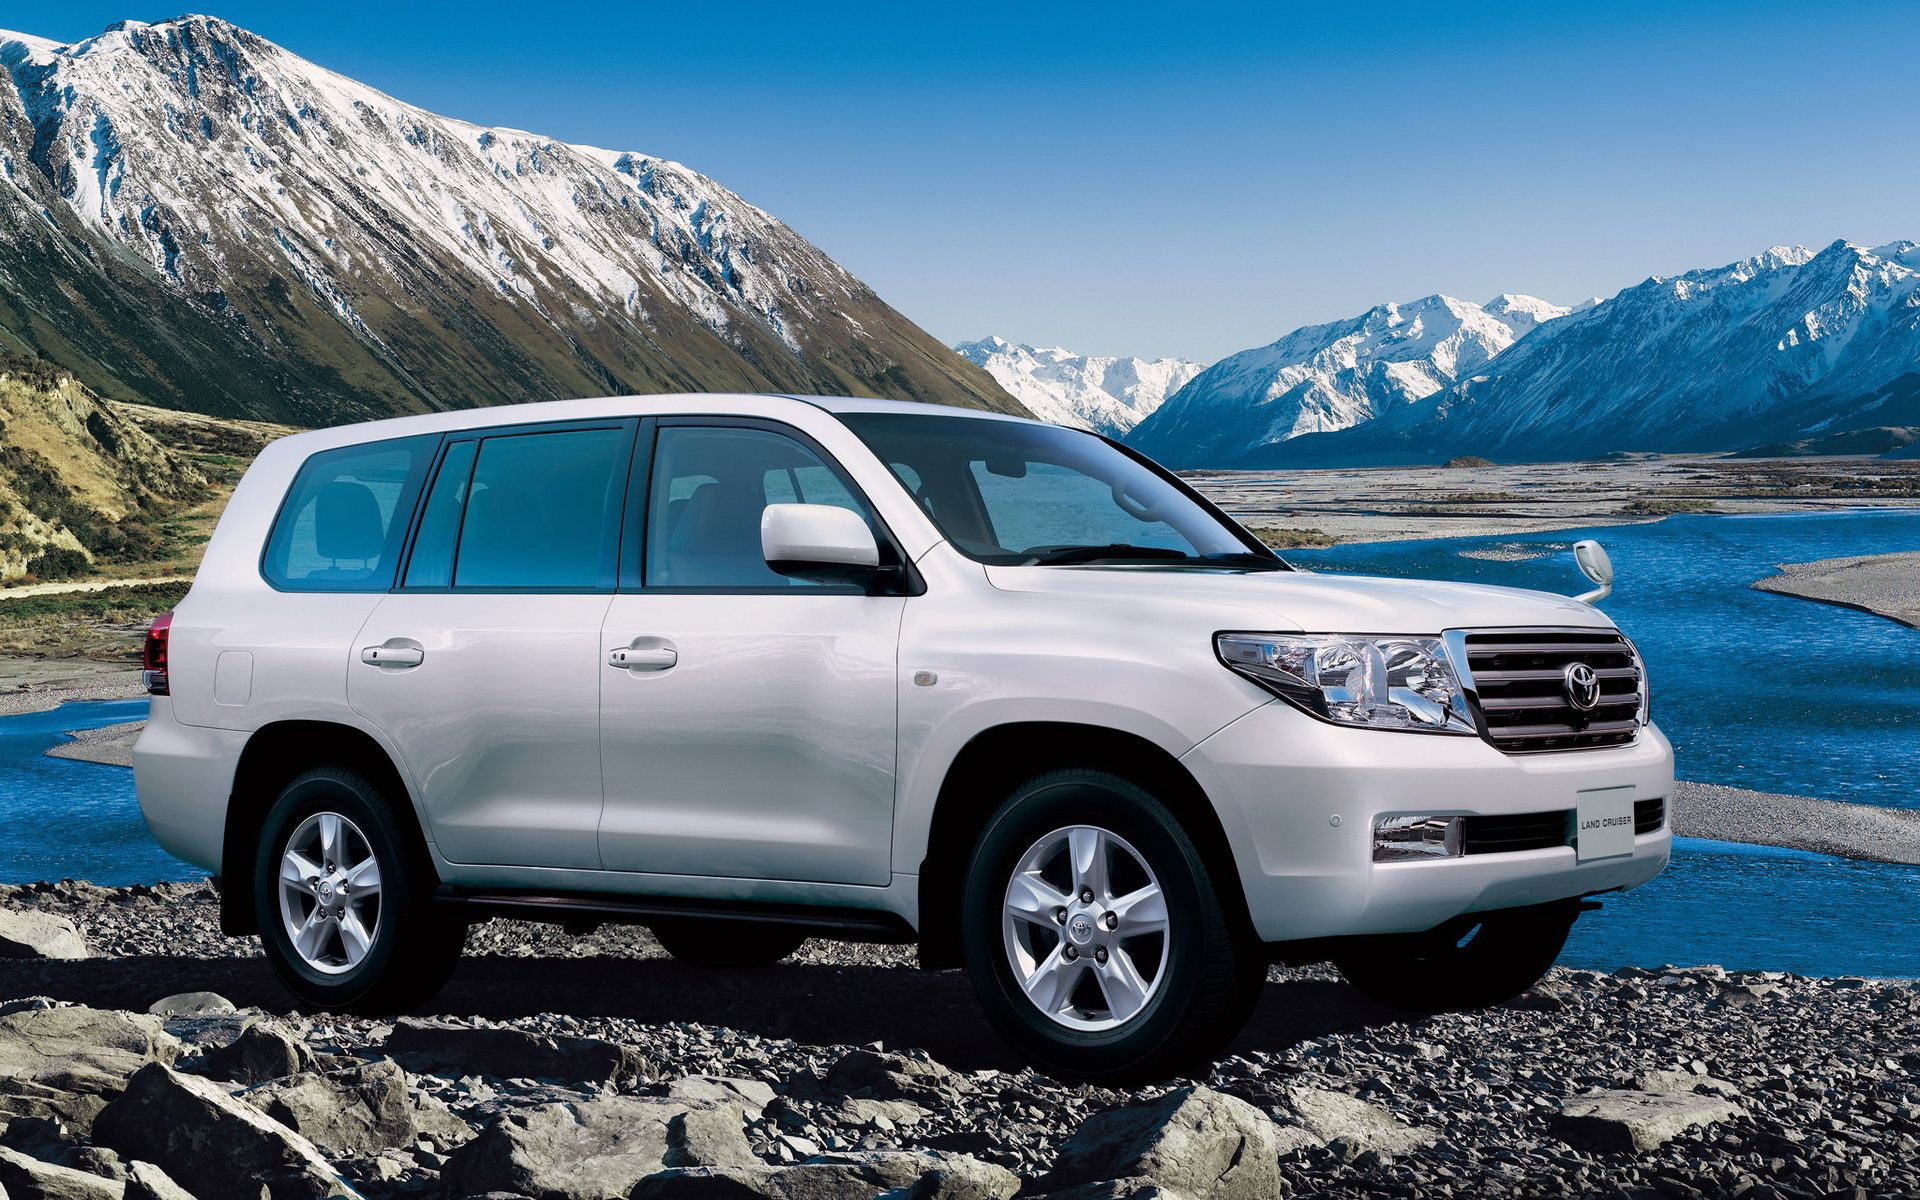 Toyota Land Cruiser 200 Wallpapers And Images Landcruiser 200